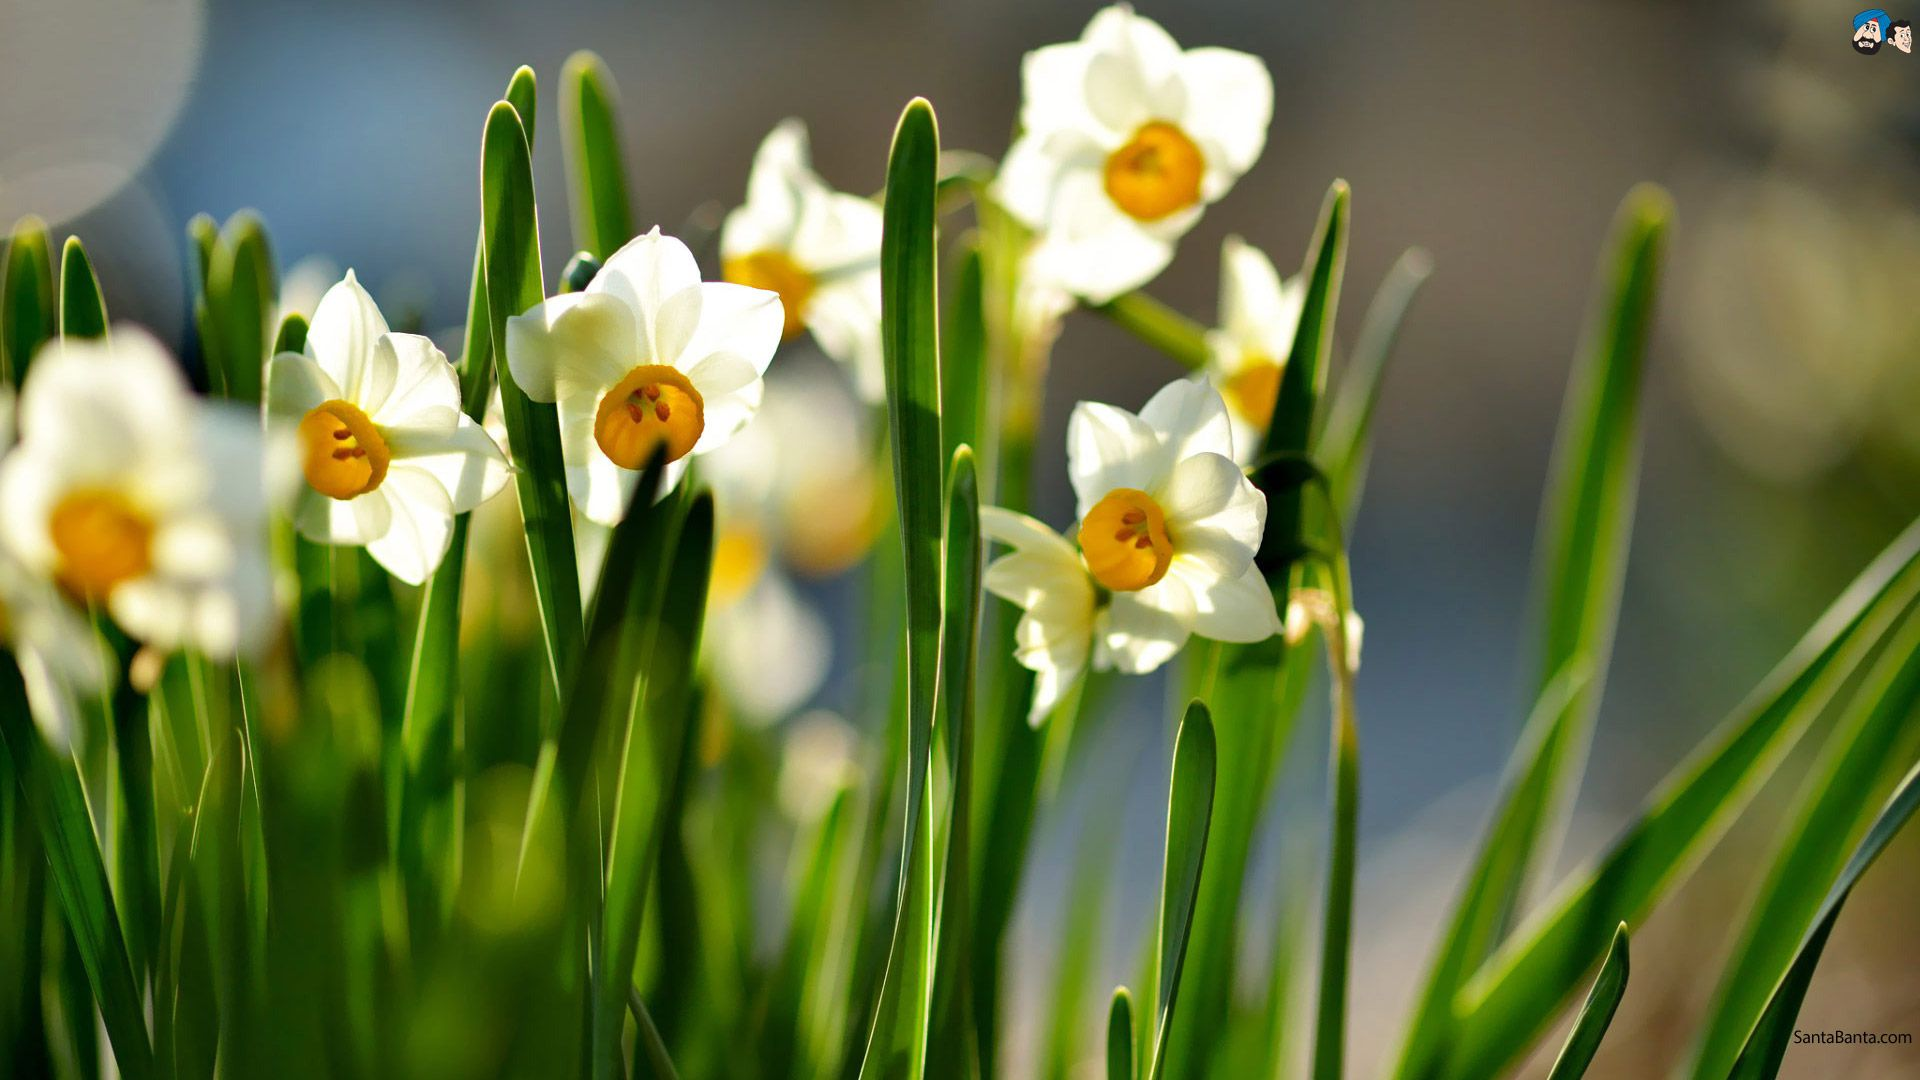 Daffodils Hd Wallpaper 1 Daffodil Flower Flower Background Wallpaper Daffodils